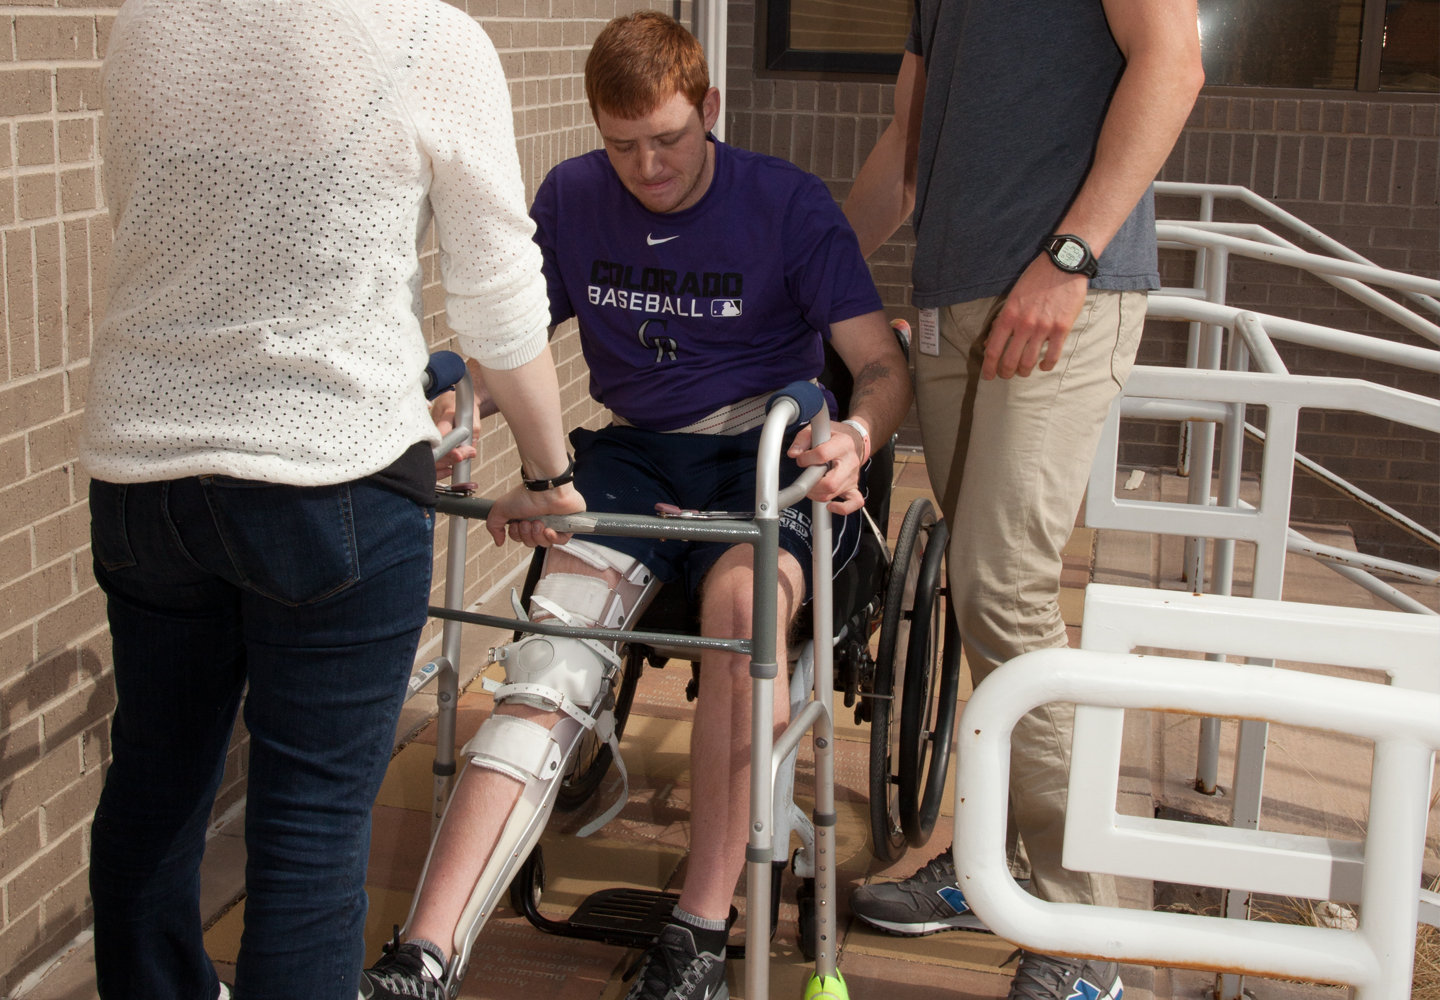 Spinal Cord Injury Patient Working With Craig Hospital's Interdisciplinary Treatment Team